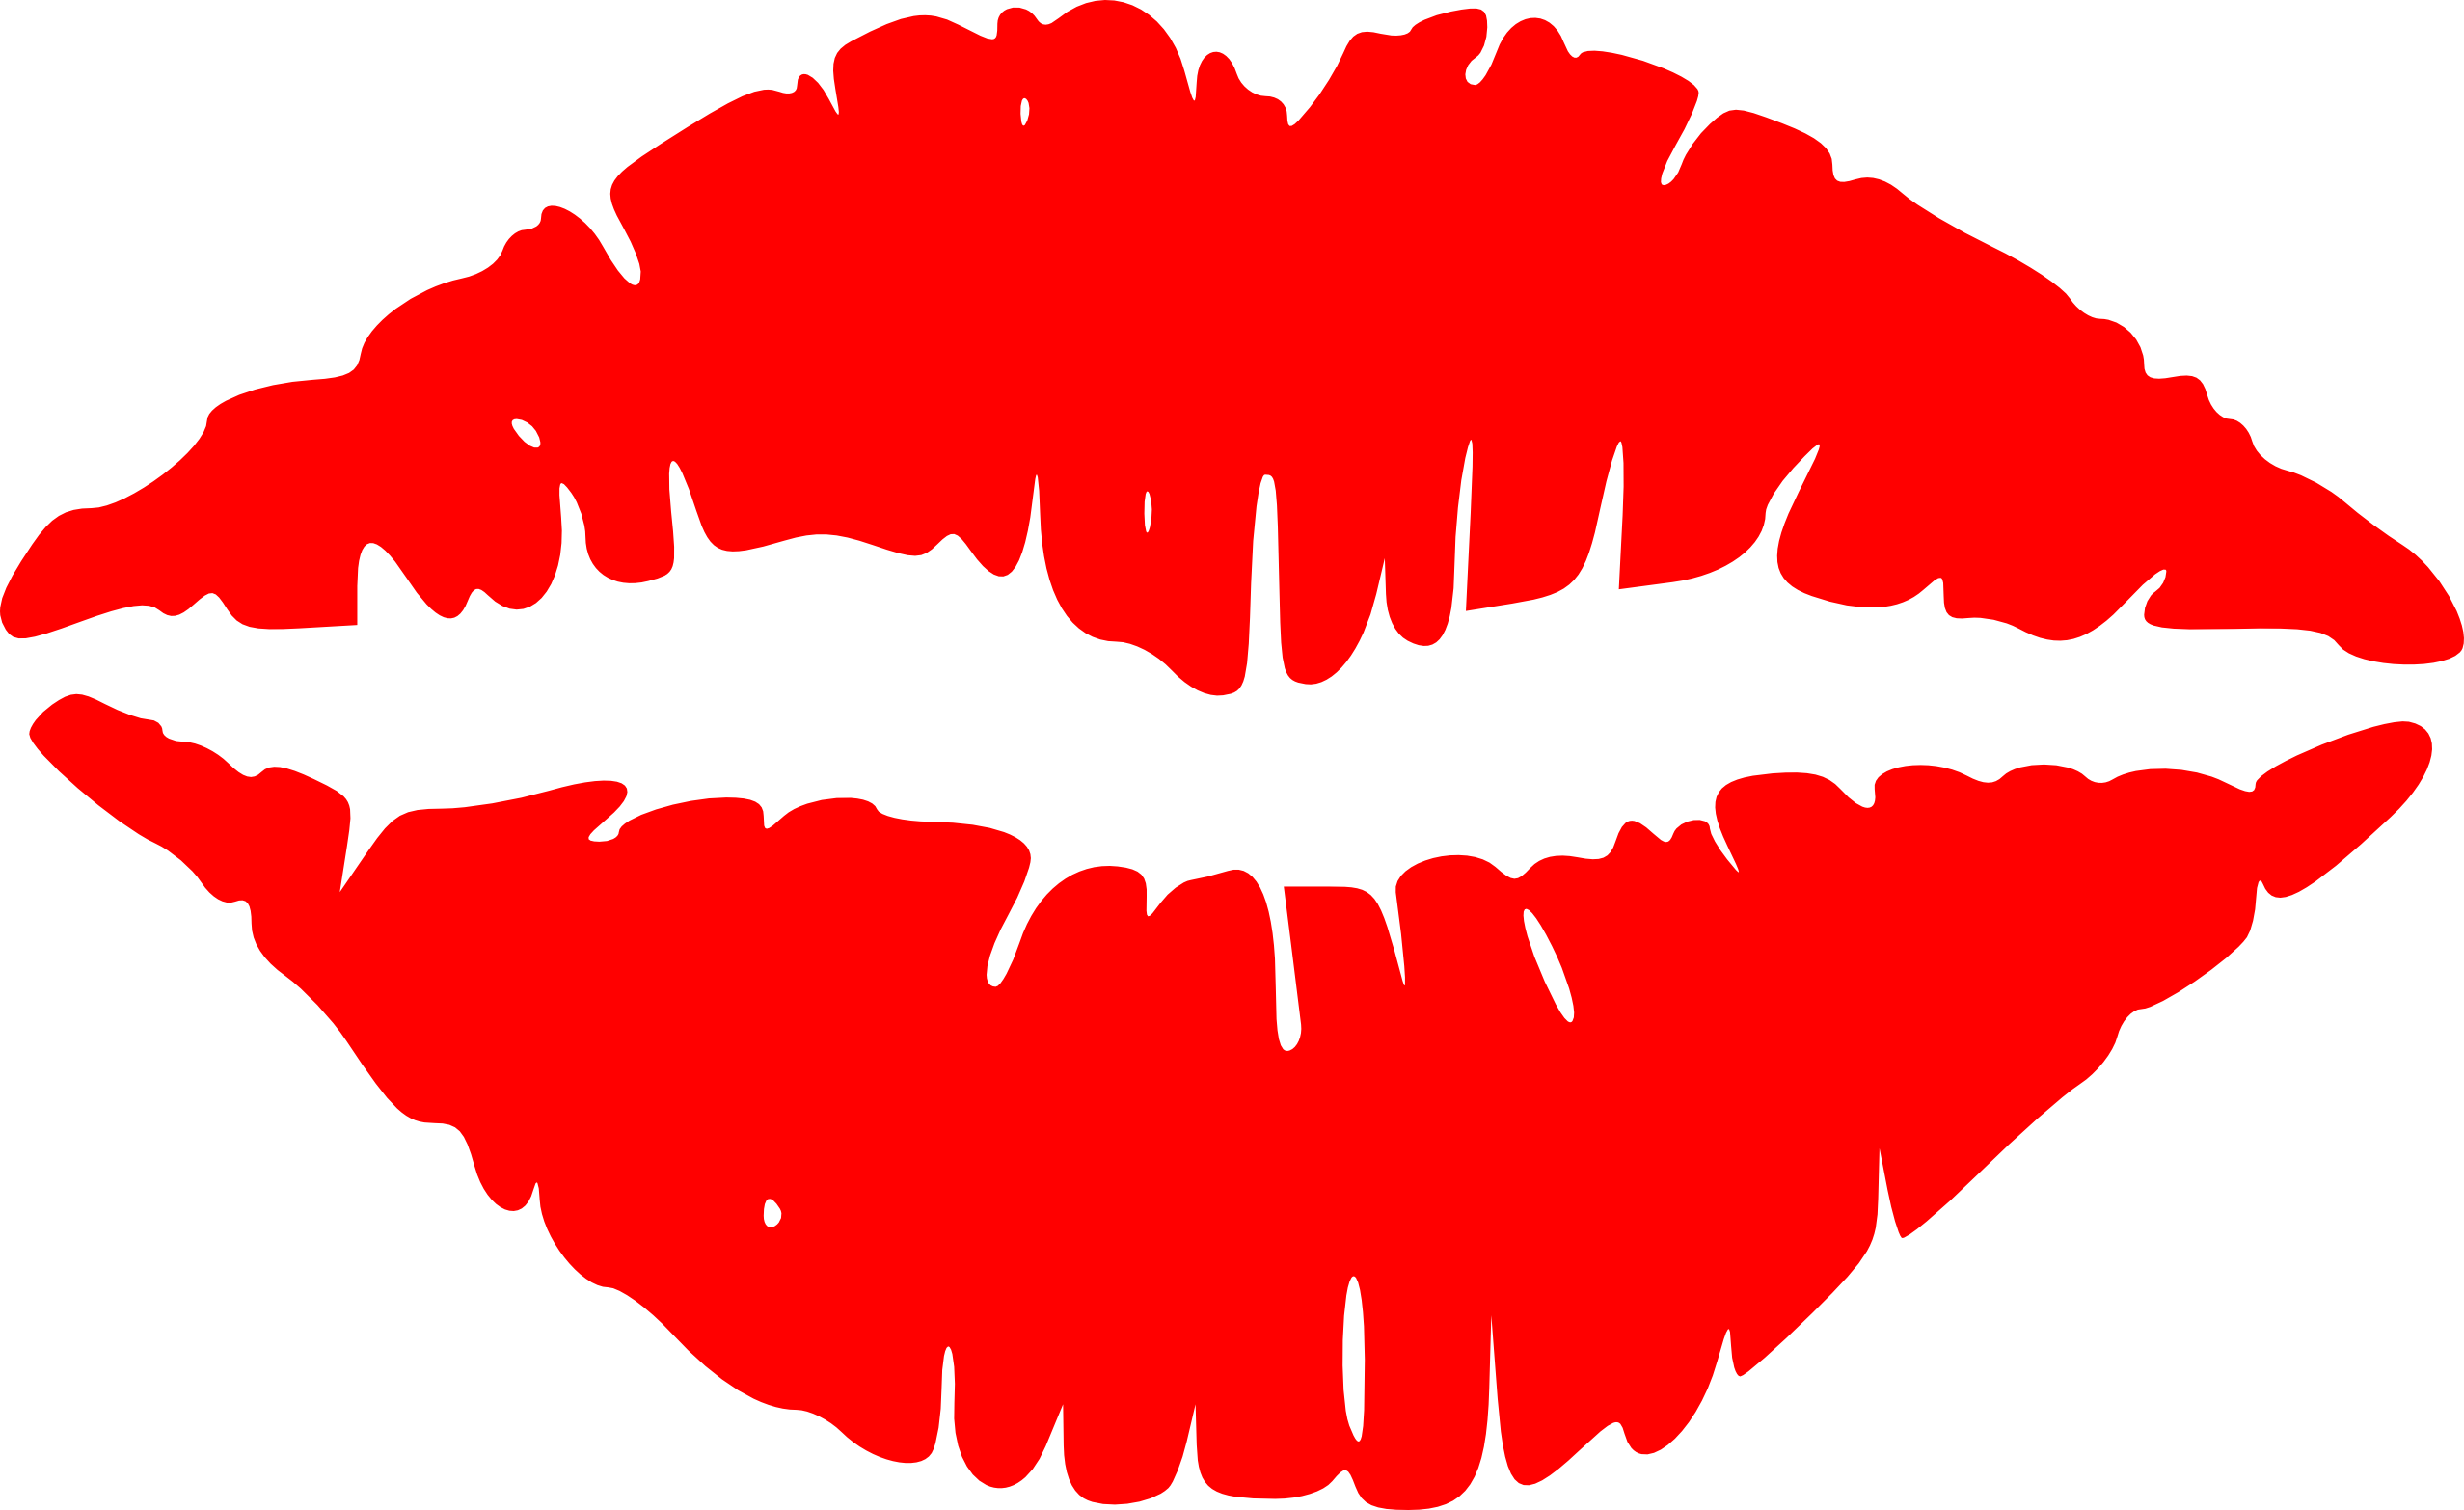 Free Lips Vector Png, Download Free Clip Art, Free Clip Art.